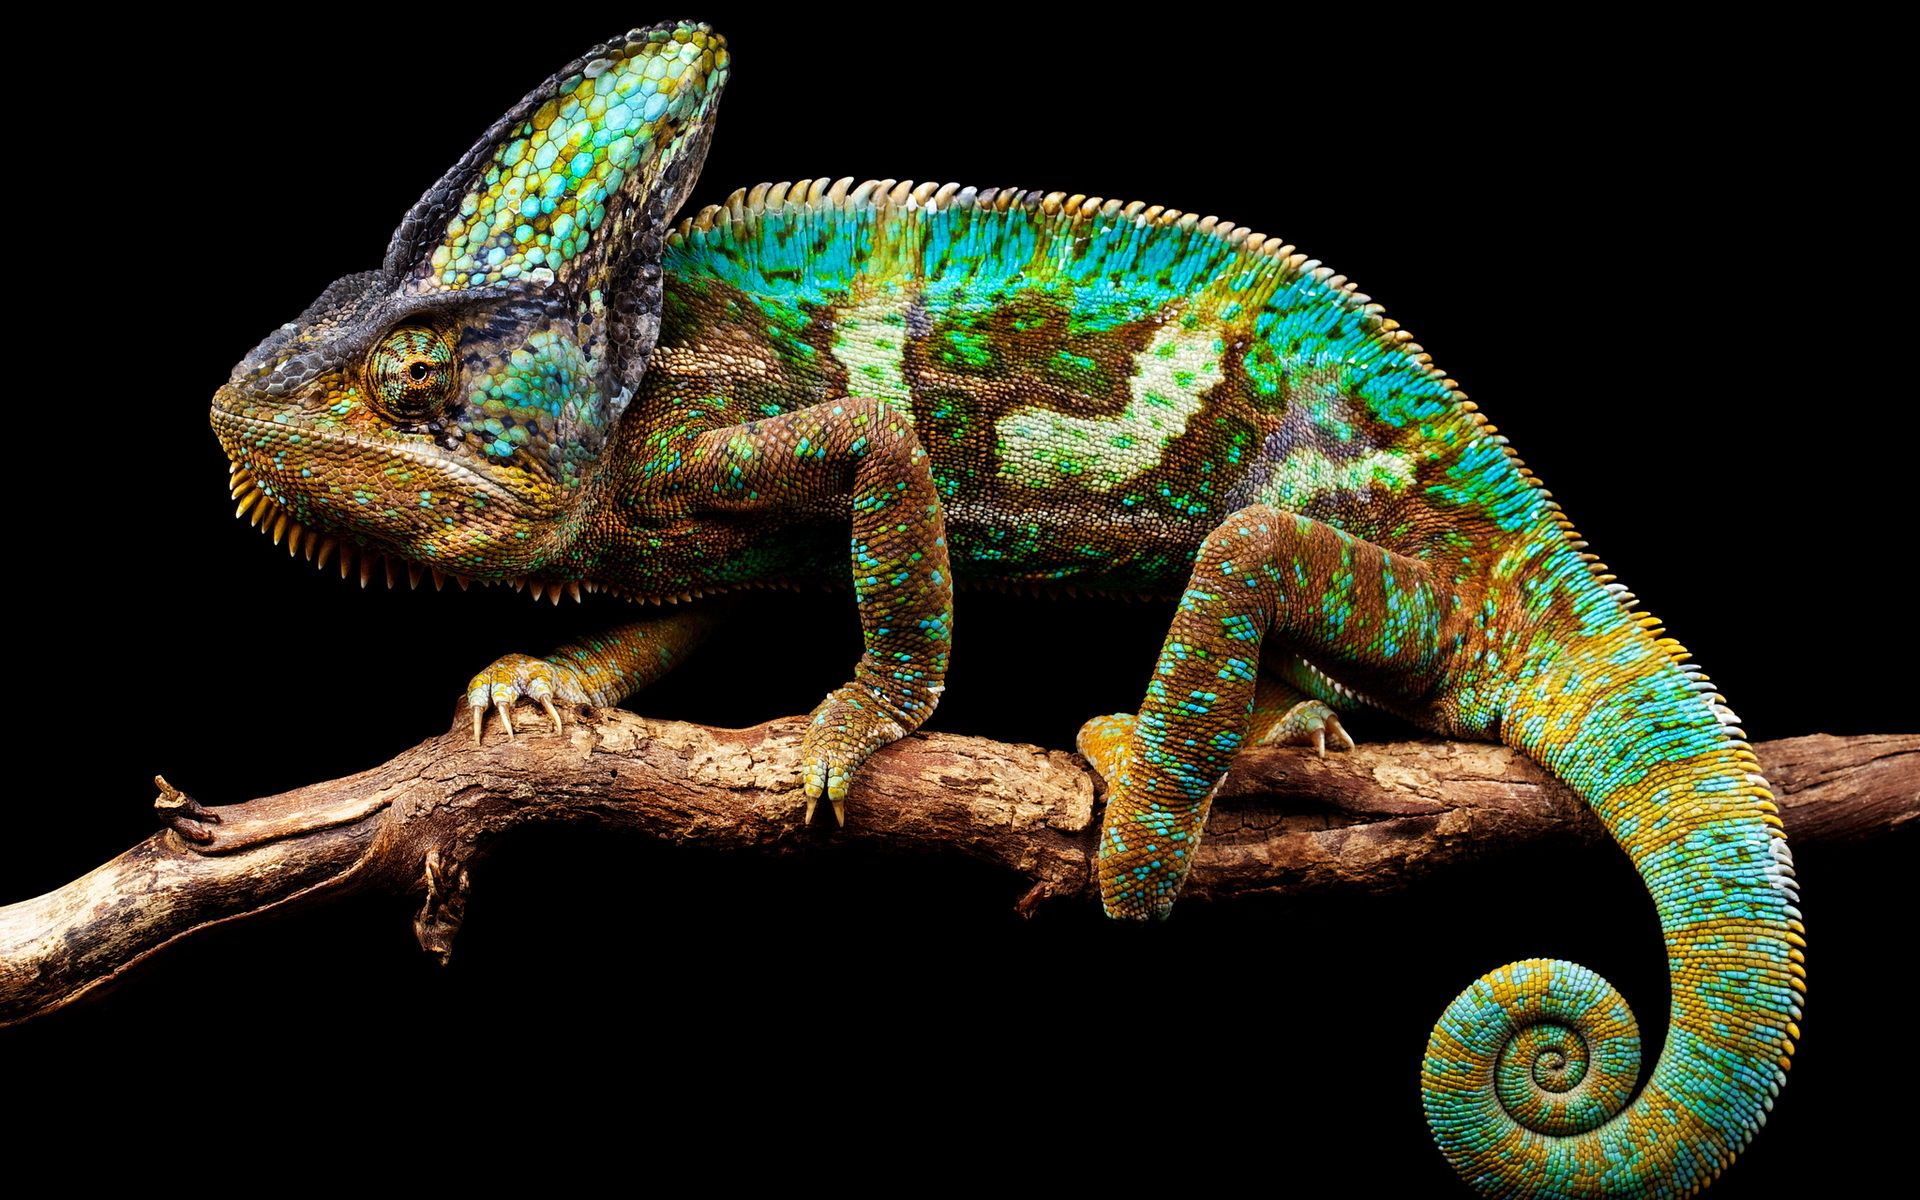 chameleon wallpaper 1920x1200 - photo #11